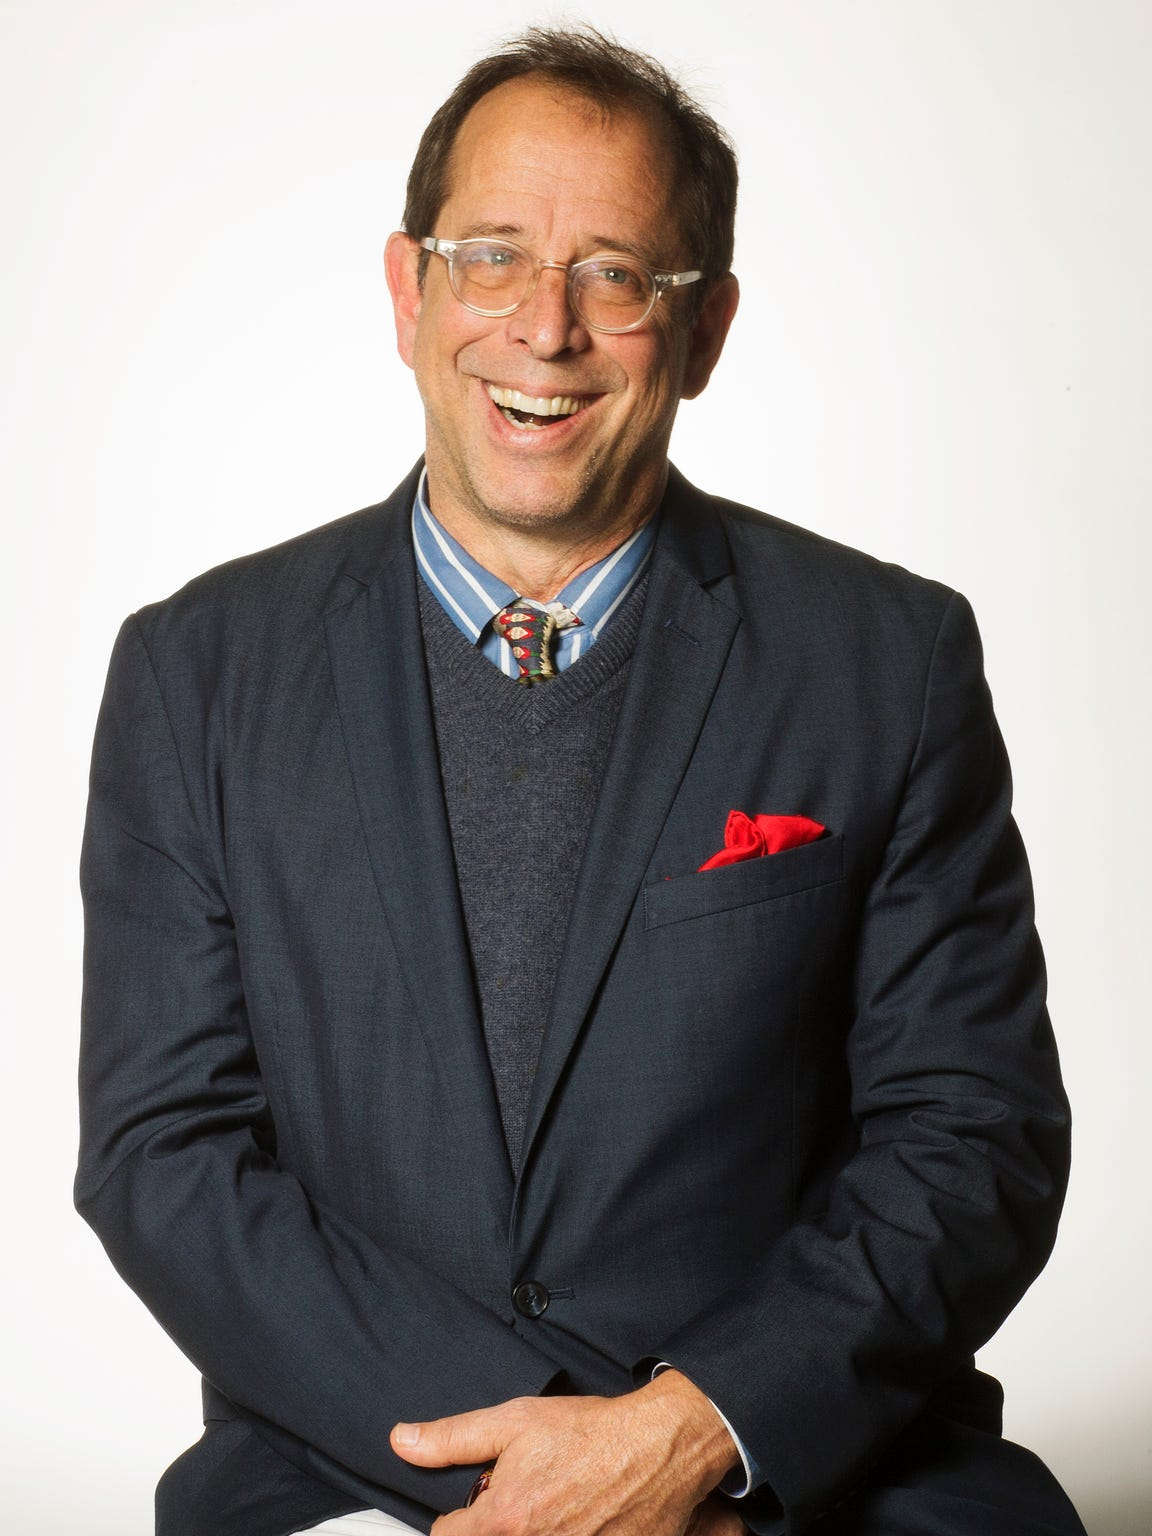 Robert Cacioppo, Founder and Producing Artistic Director at Florida Repertory Theatre, is a The News-Press People of the Year finalist for 2017.